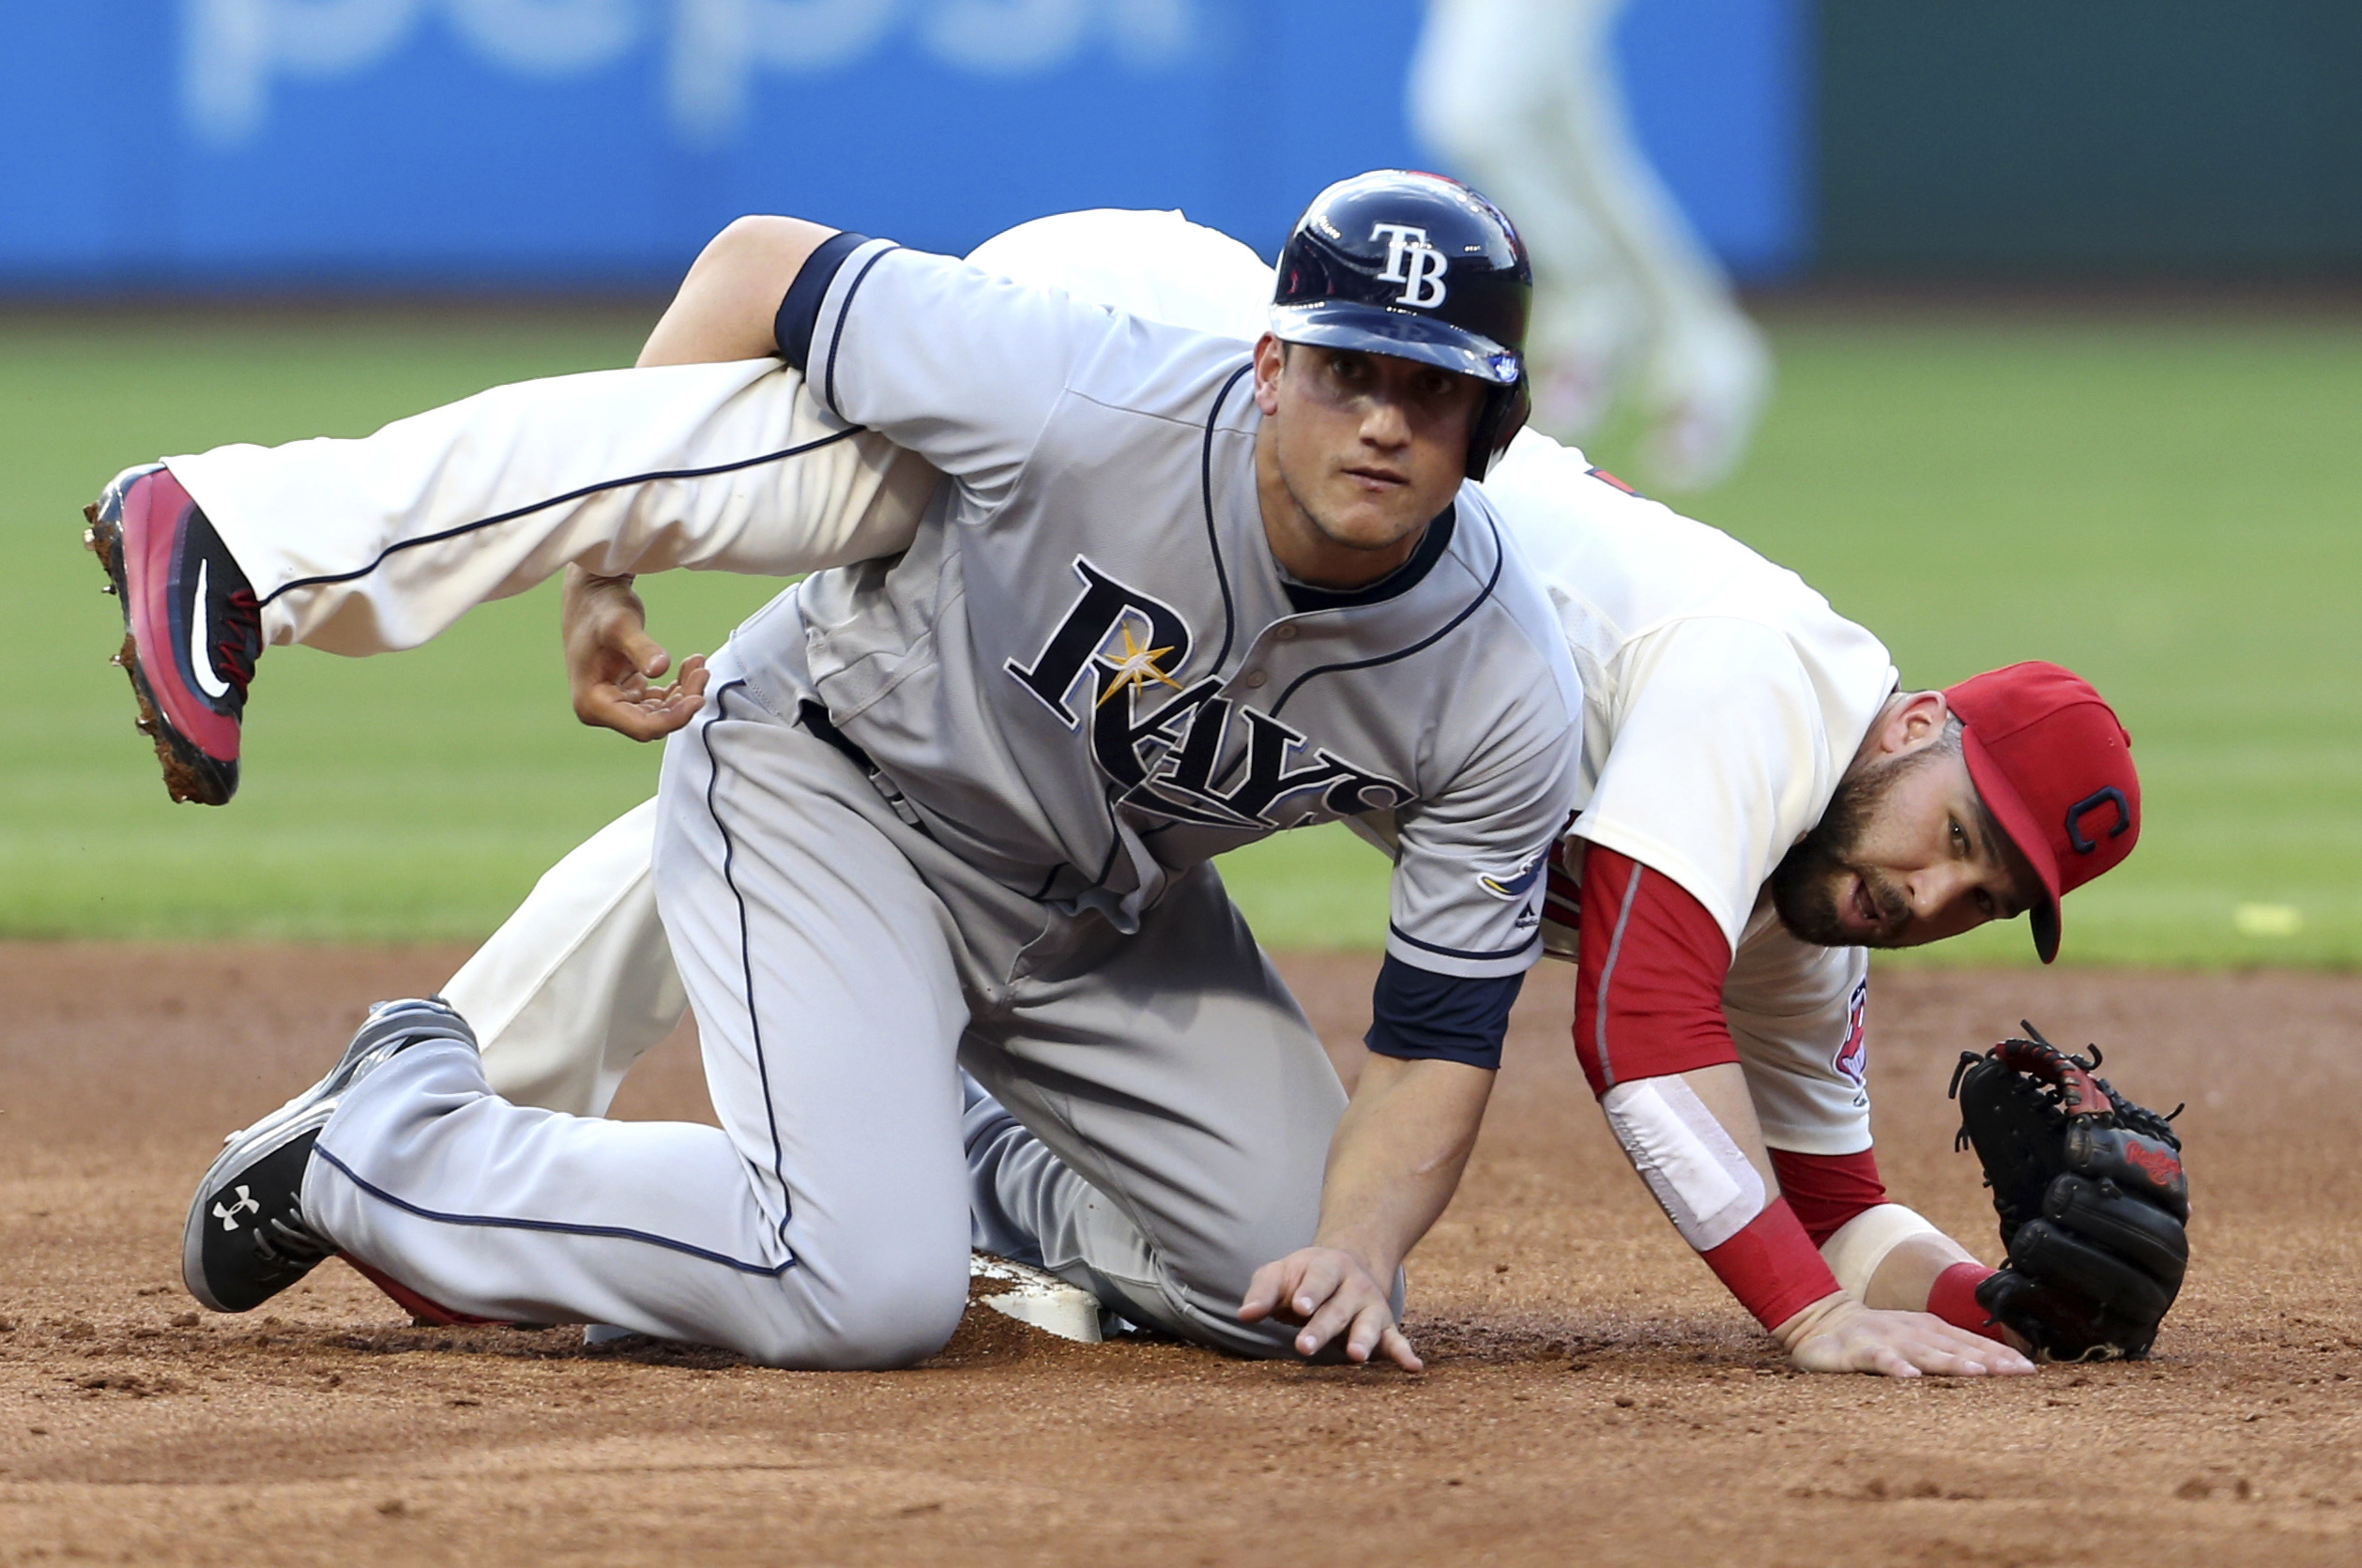 Cleveland Indians' Jason Kipnis, right, and Tampa Bay Rays' Mikie Mahtook watch Kipnis' throw to first for the out on Curt Casali to complete a double play during the second inning of a baseball game Monday, June 20, 2016, in Cleveland. (AP Photo/Ron Schw